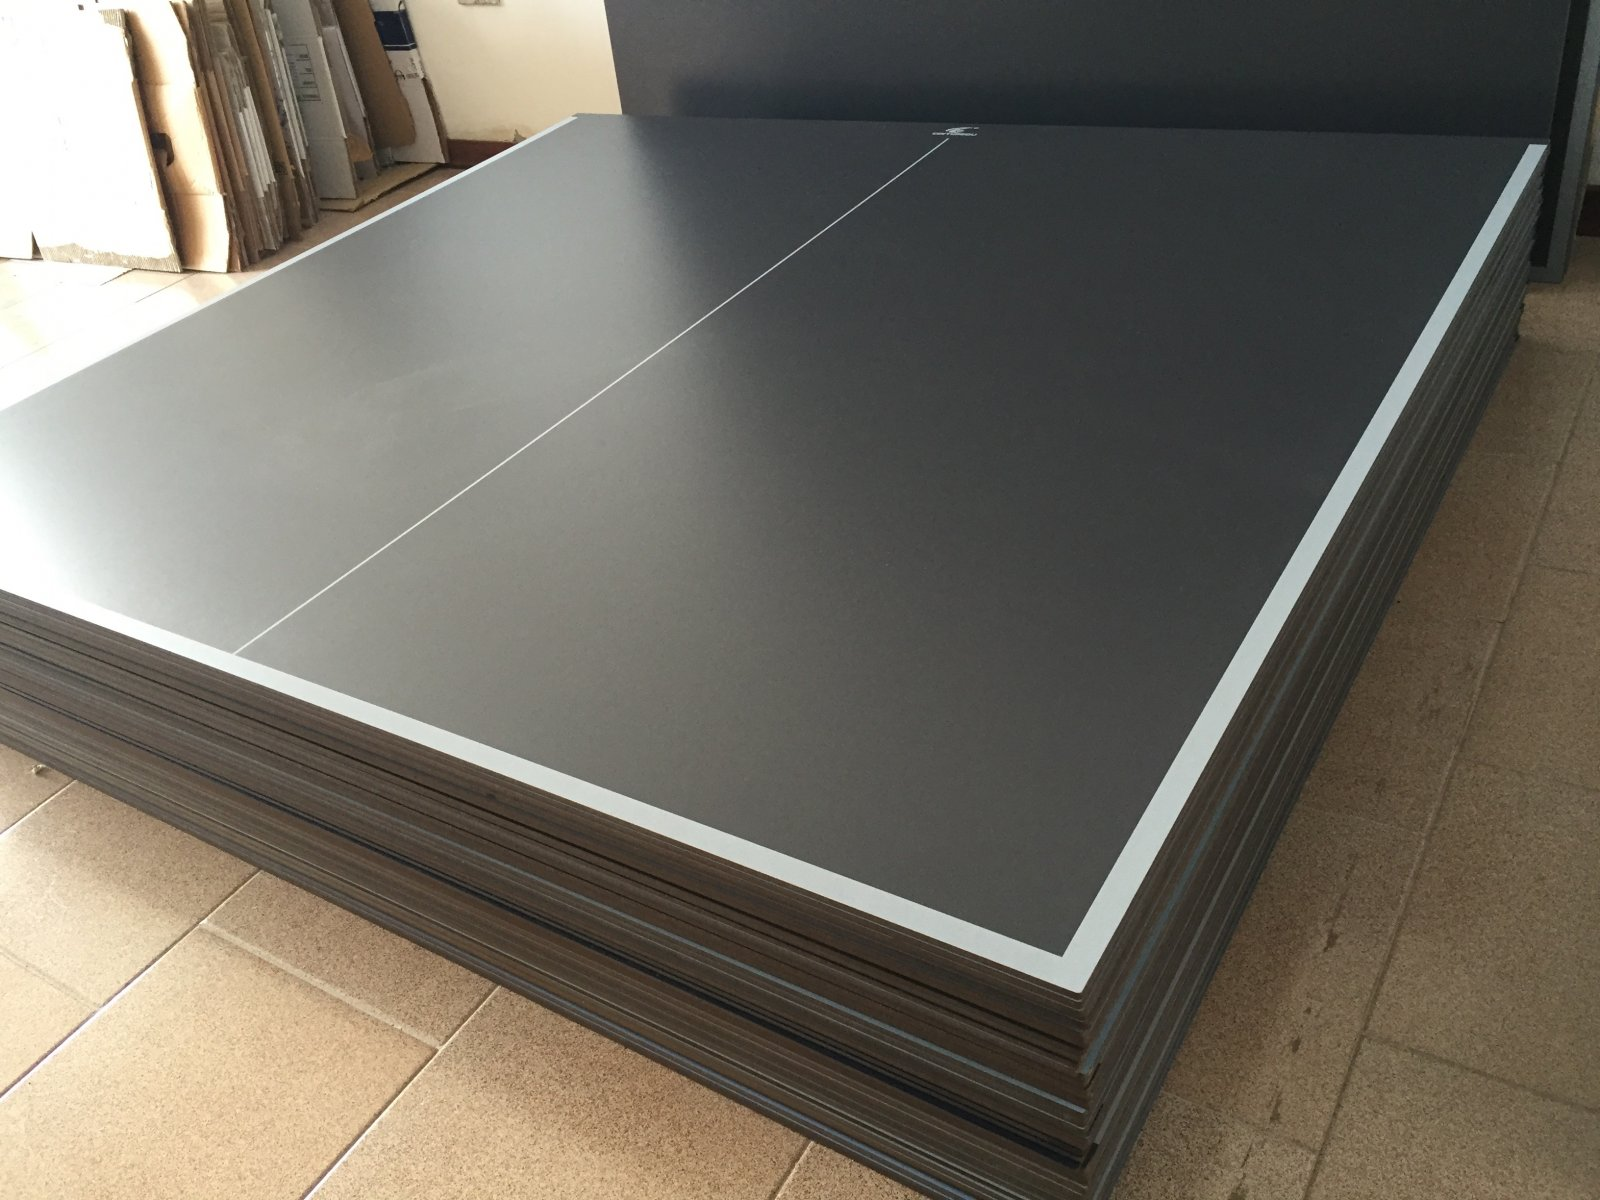 Piani pannelli per tavolo ping pong ping pong grigio - Materiale tavolo ping pong ...